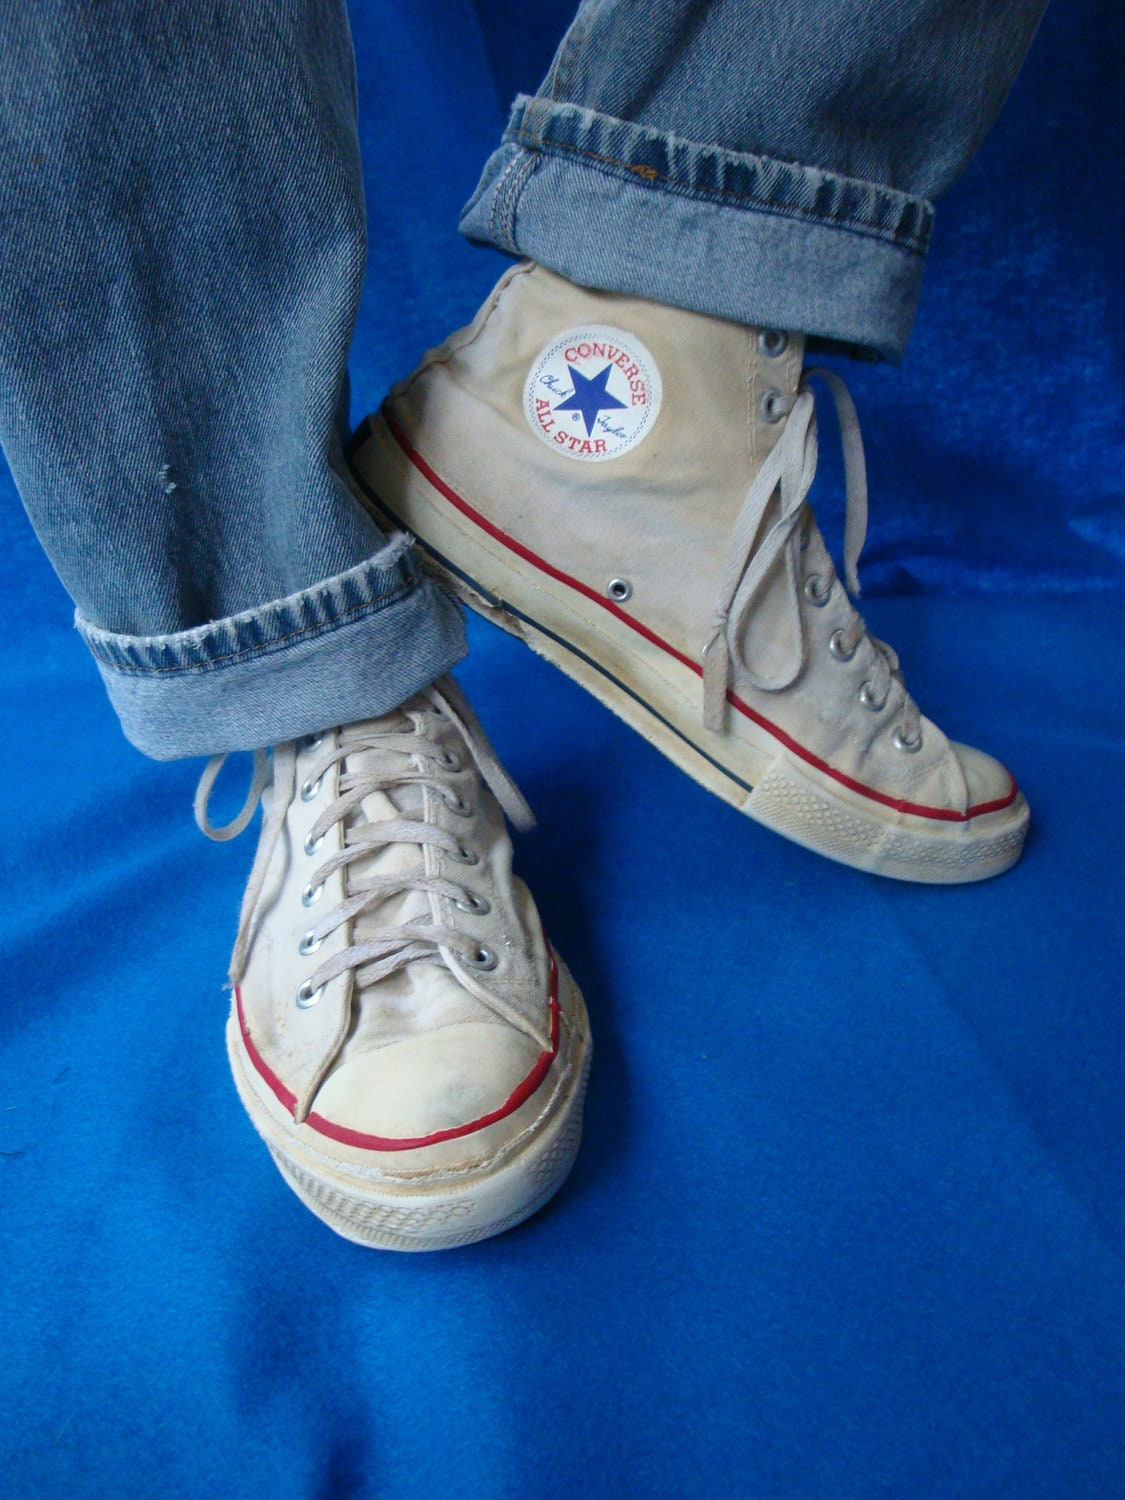 Vintage 60s Converse Chuck Taylor High Top All Star Sneakers